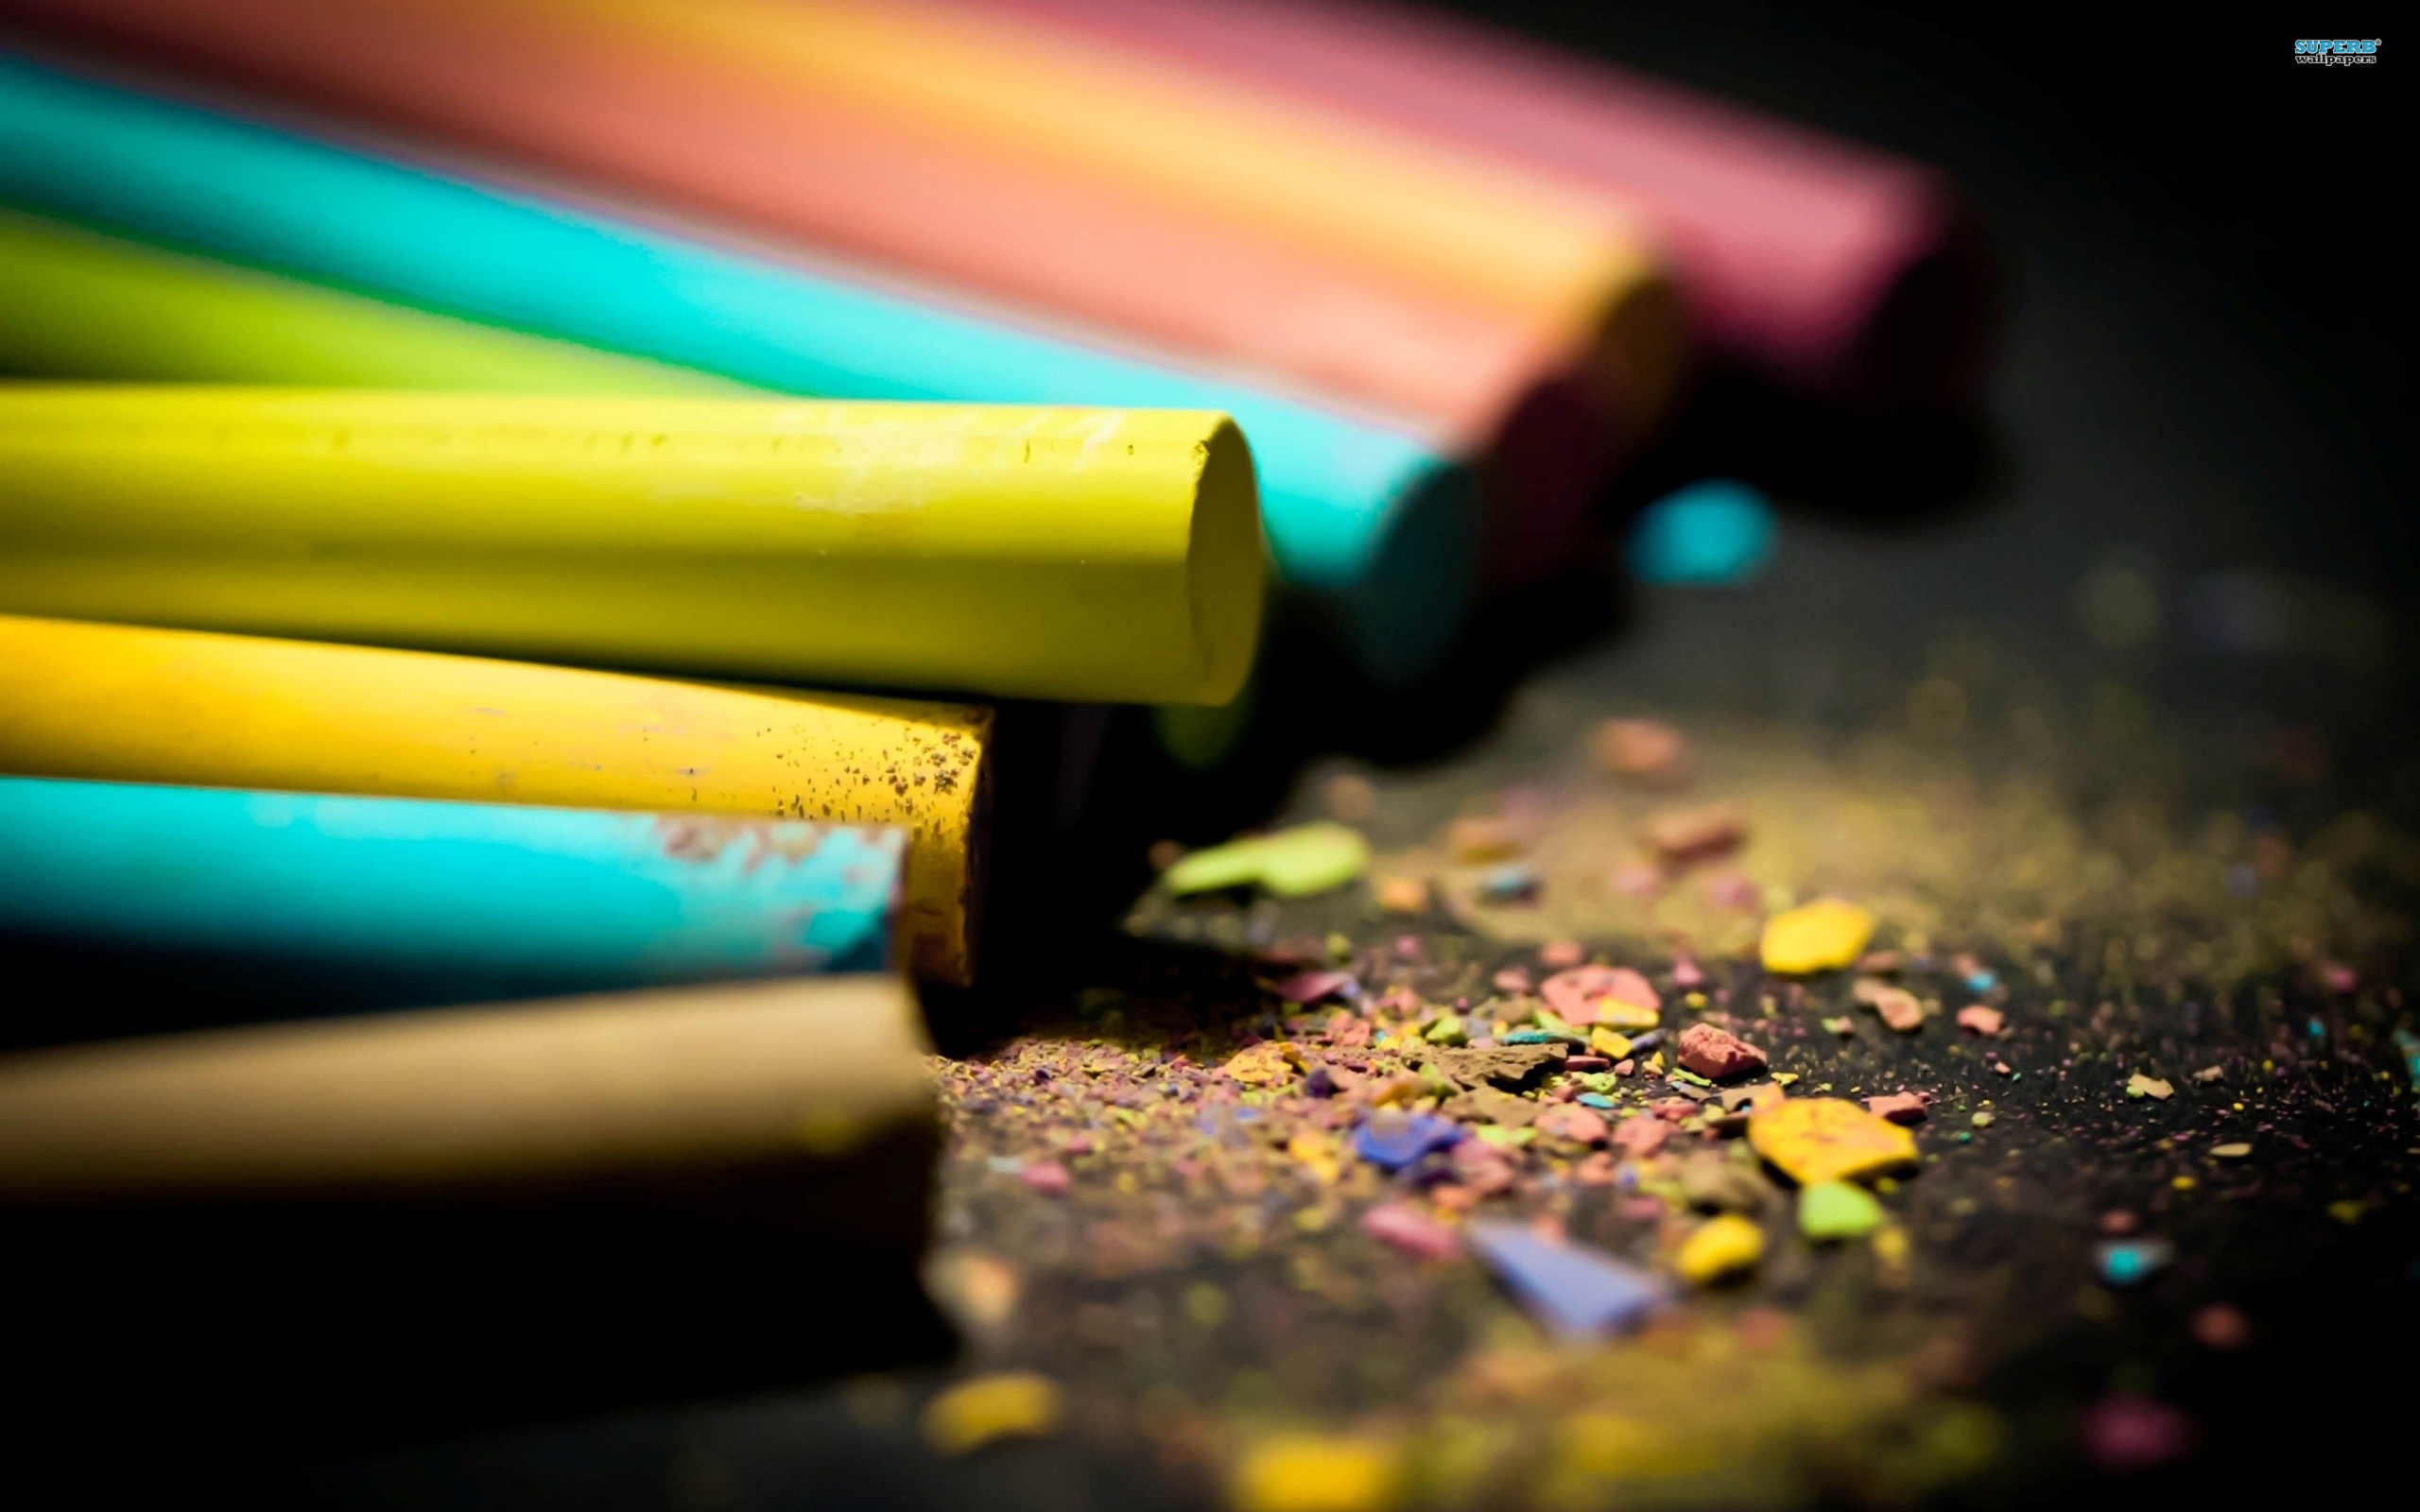 Crayons wallpaper 2560x1600 jpg